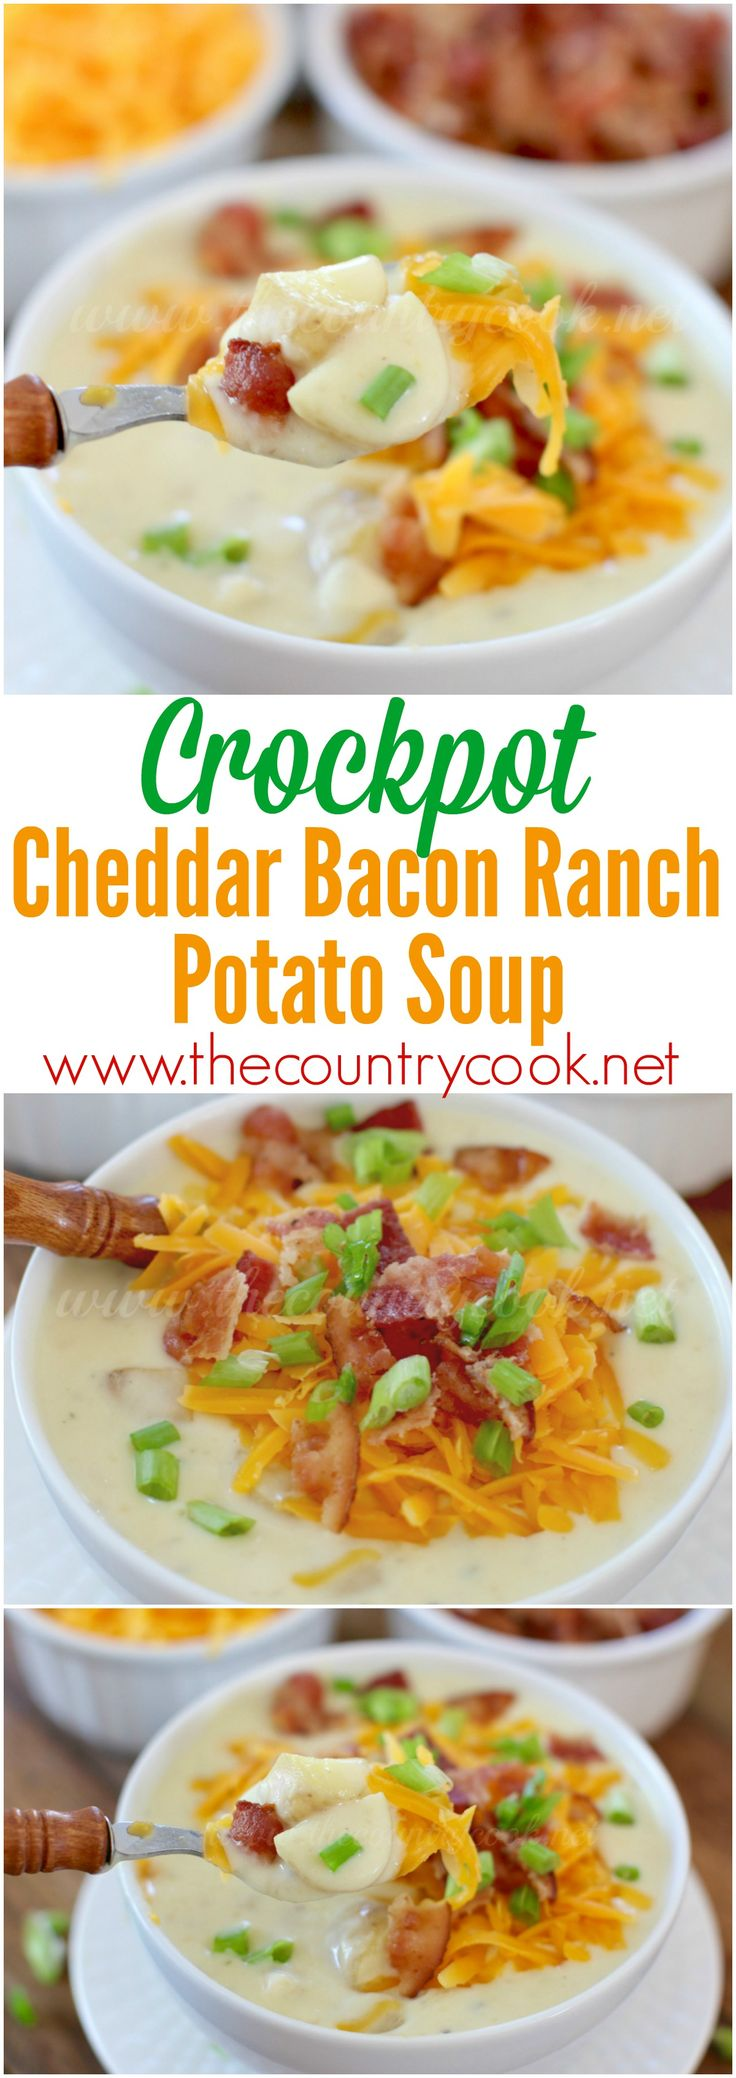 Crock Pot Cheddar Bacon Ranch Potato Soup recipe from The Country Cook